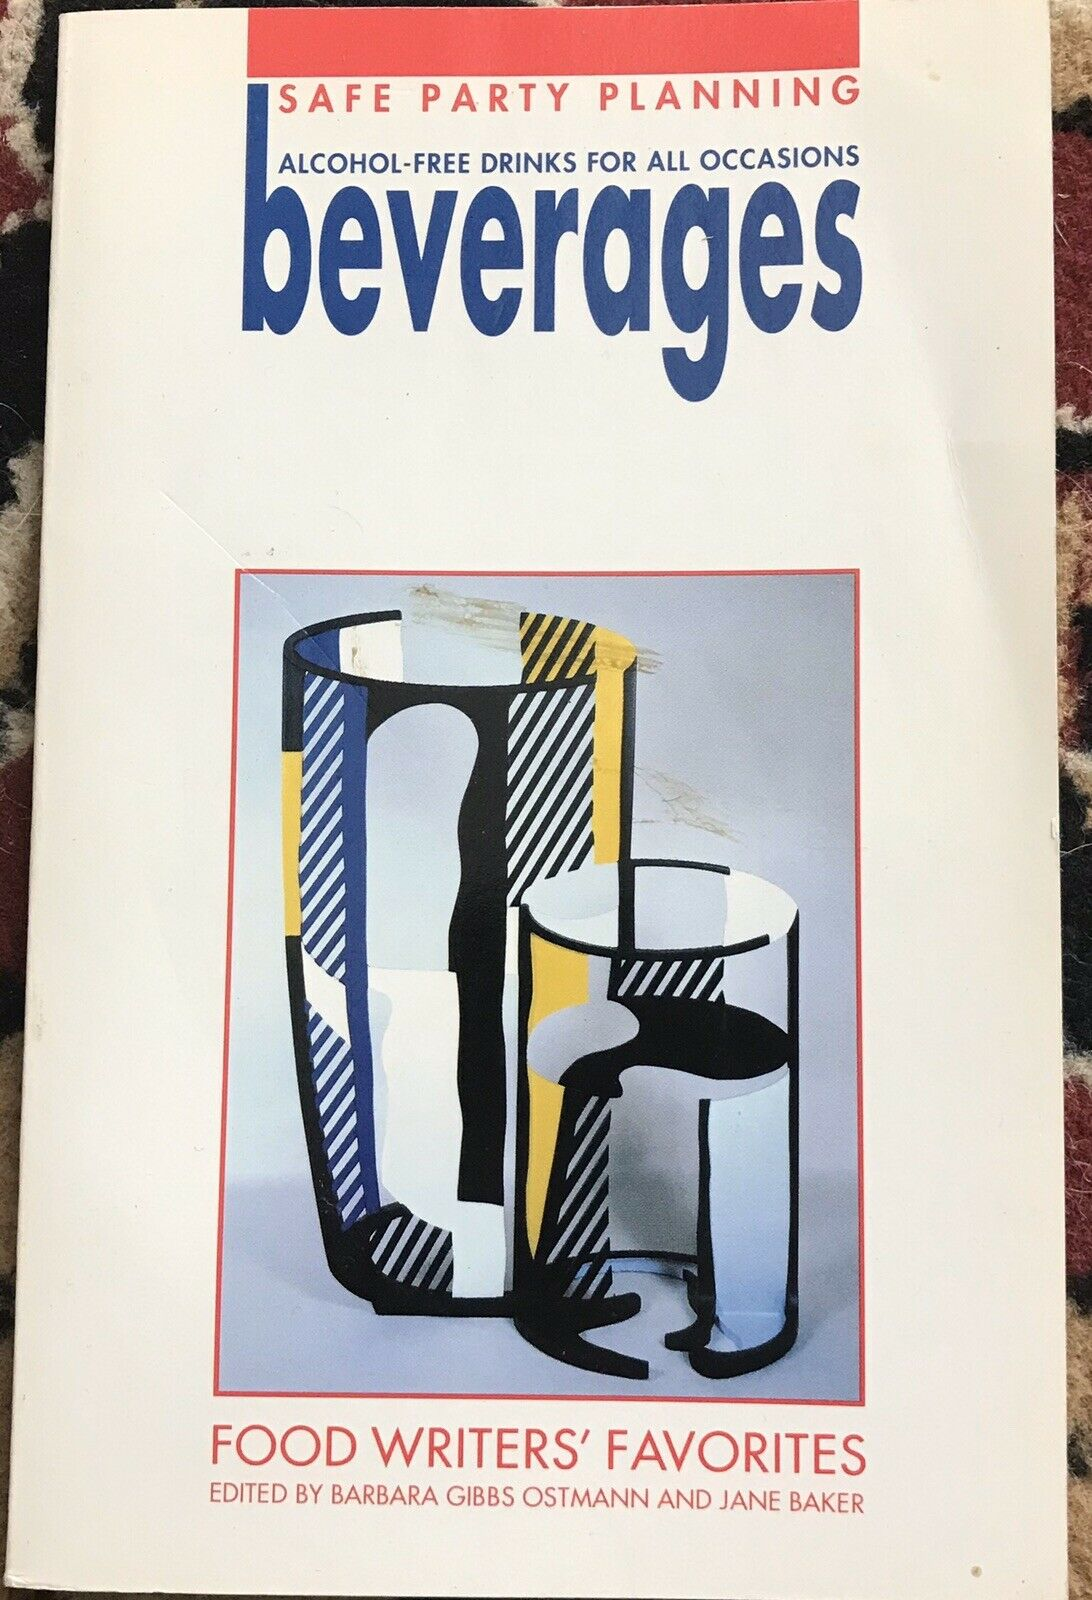 VINTAGE 1992 BEVERAGES COOKBOOK ALCOHOL FREE DRINKS FOOD WRITERS' FAVORITES |